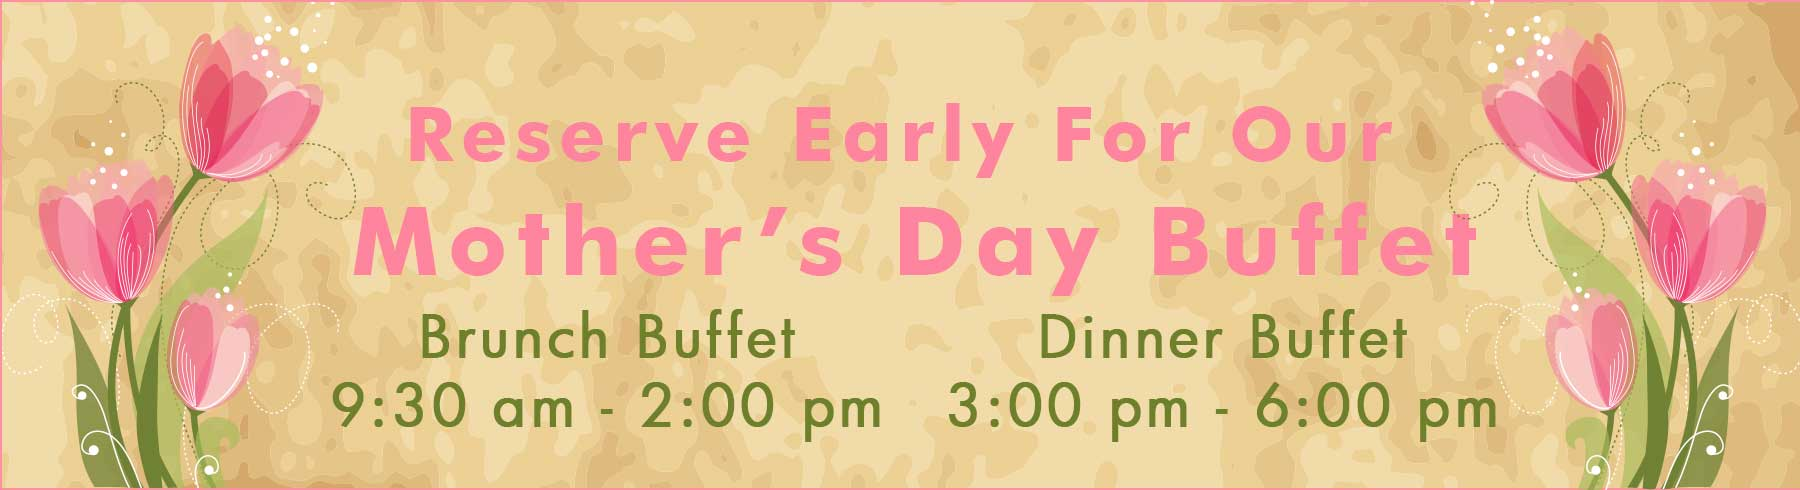 Mother's Day Buffet at the Stage House Tavern in Mountainside, NJ